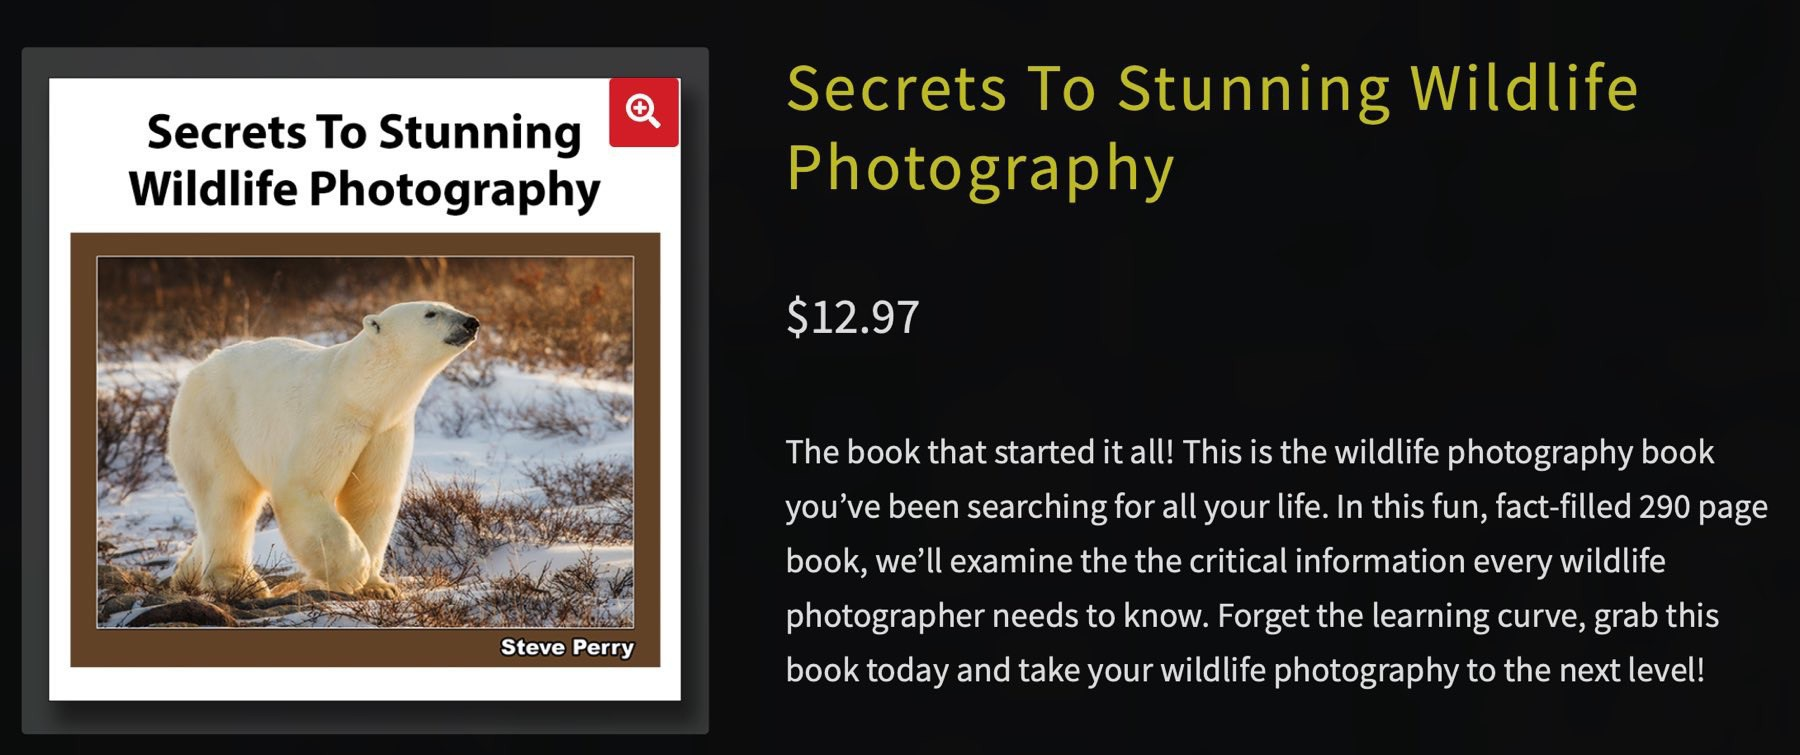 Secrets To Stunning Wildlife Photography, web page screenshot.